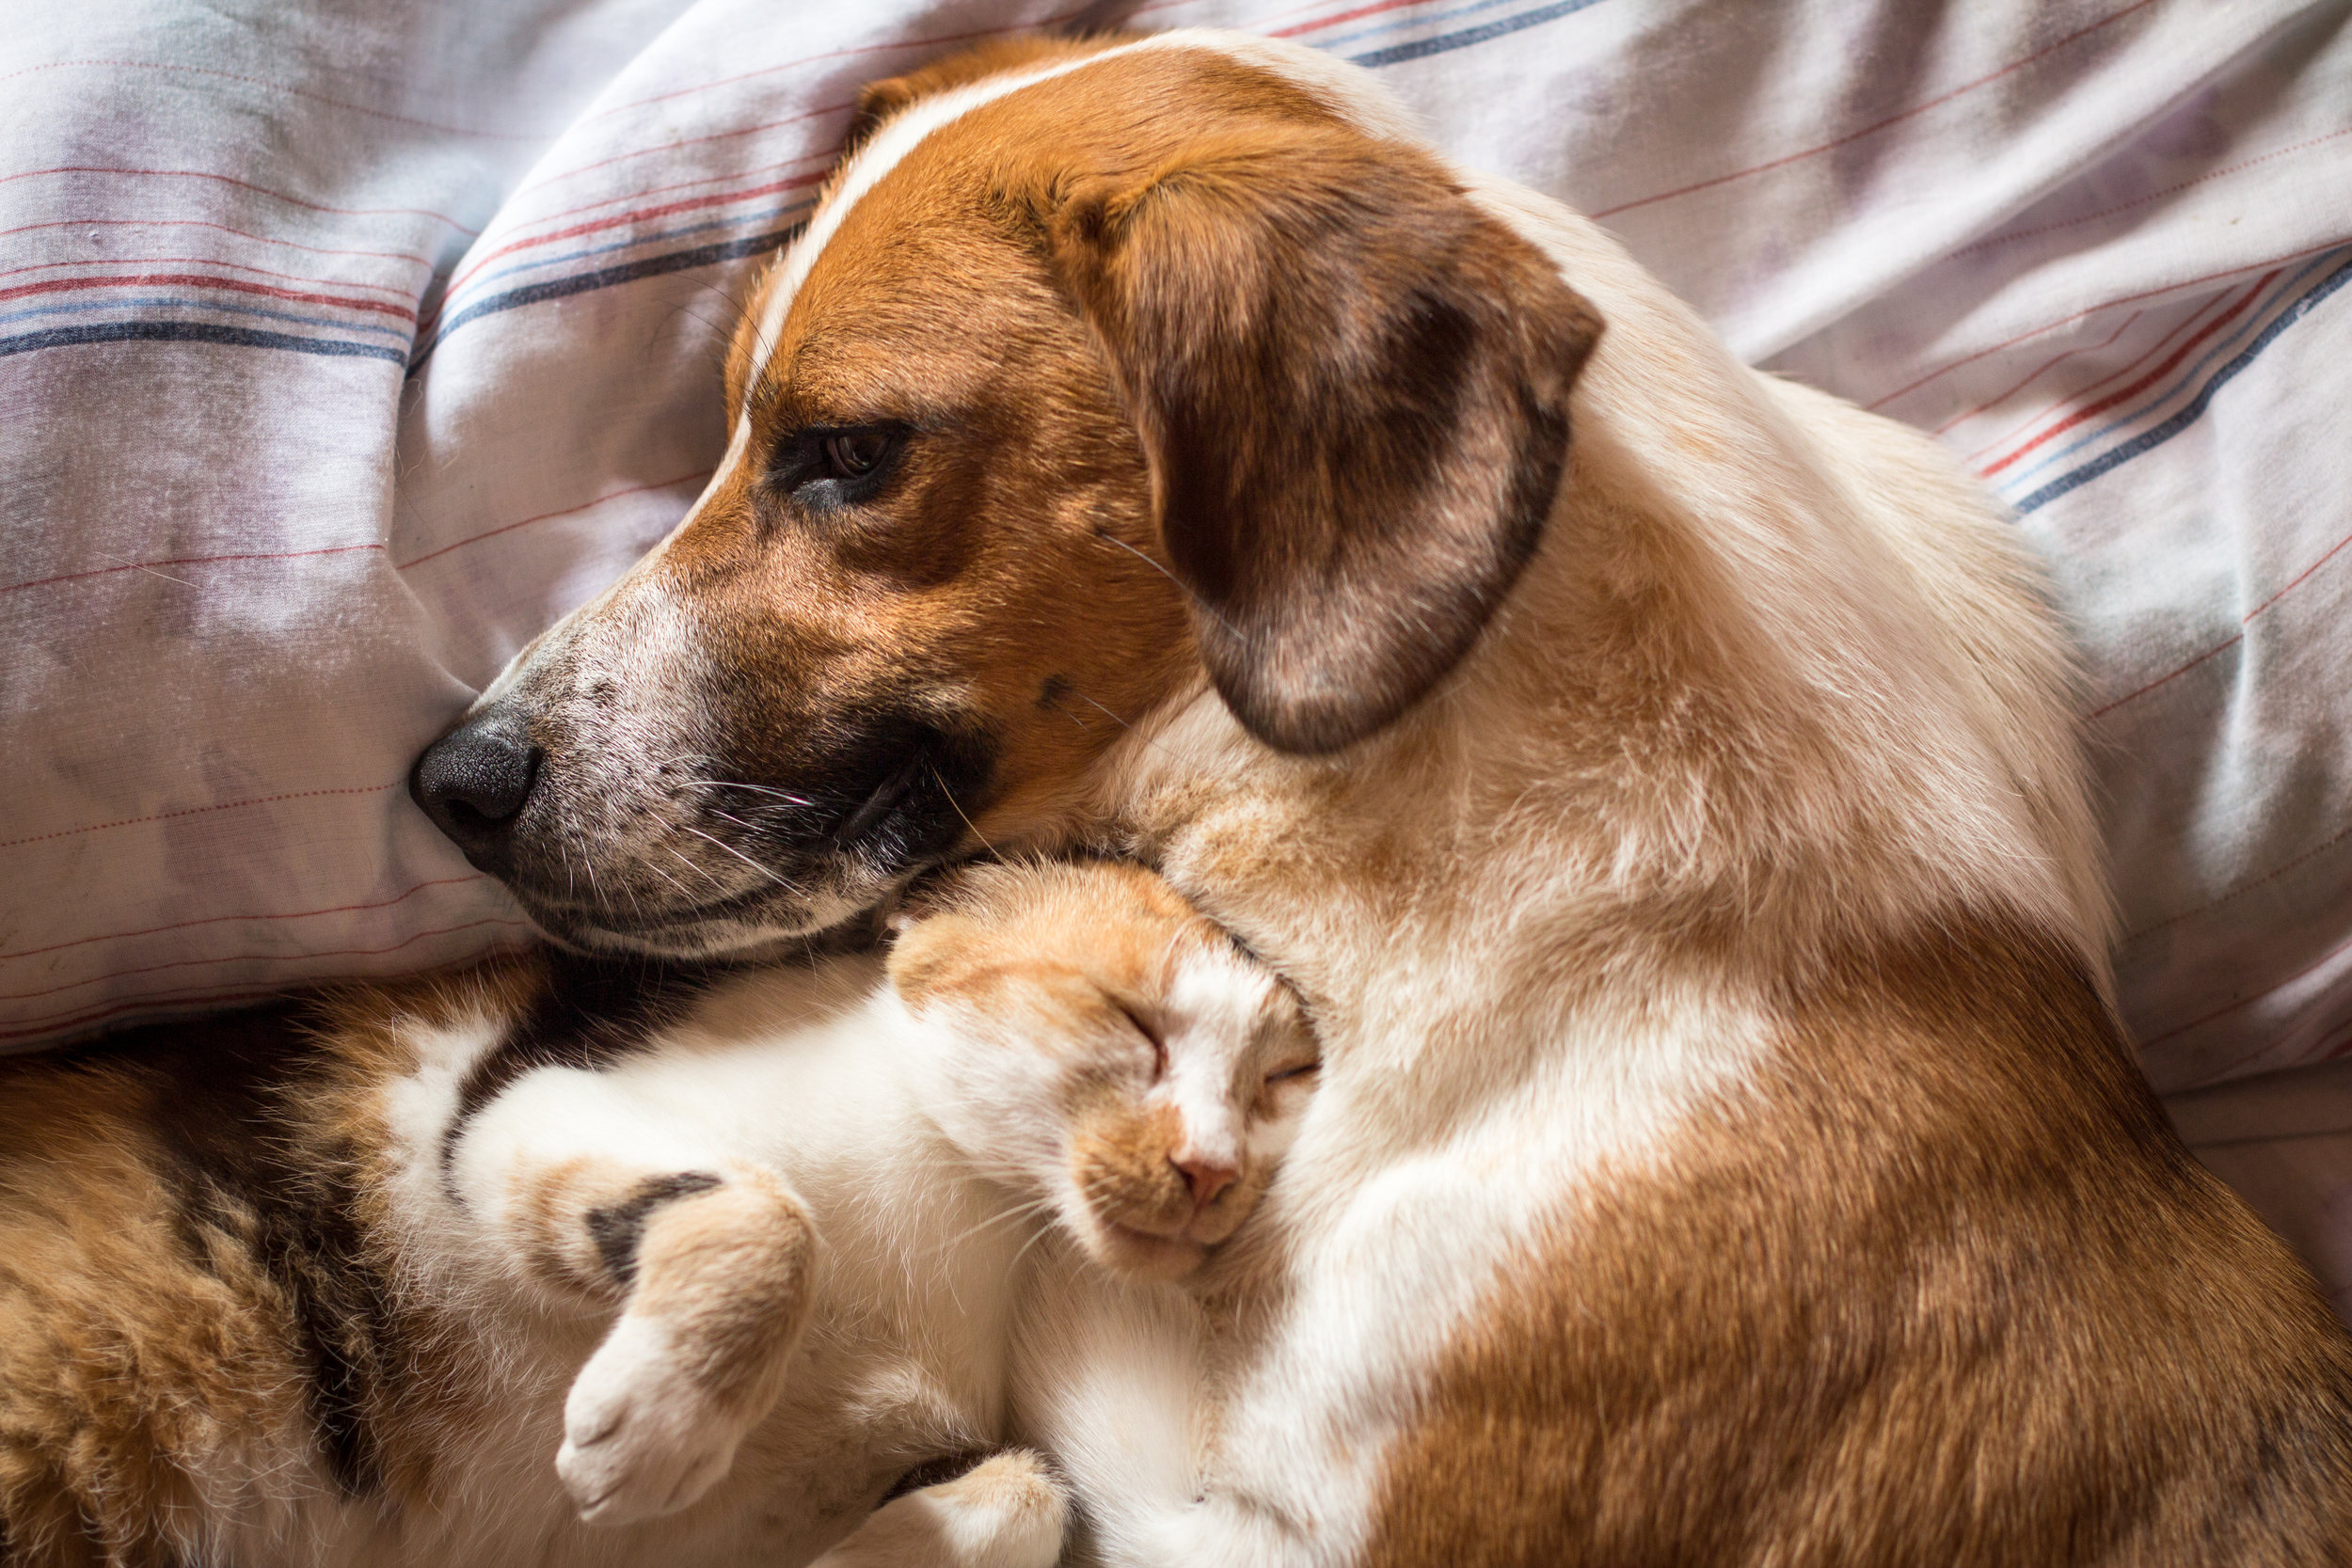 Give comfort when it is most needed. - Becoming a foster is an exceptional way to help our rescues. When you foster, you are taking a rescue into your home as if they are family. Fosters are responsible for daily care and supervision. Most importantly, fosters offer a warm, safe and loving place for animals to heal and grow. Medical care and food expenses are covered by the foundation as well as full pet care guidance.